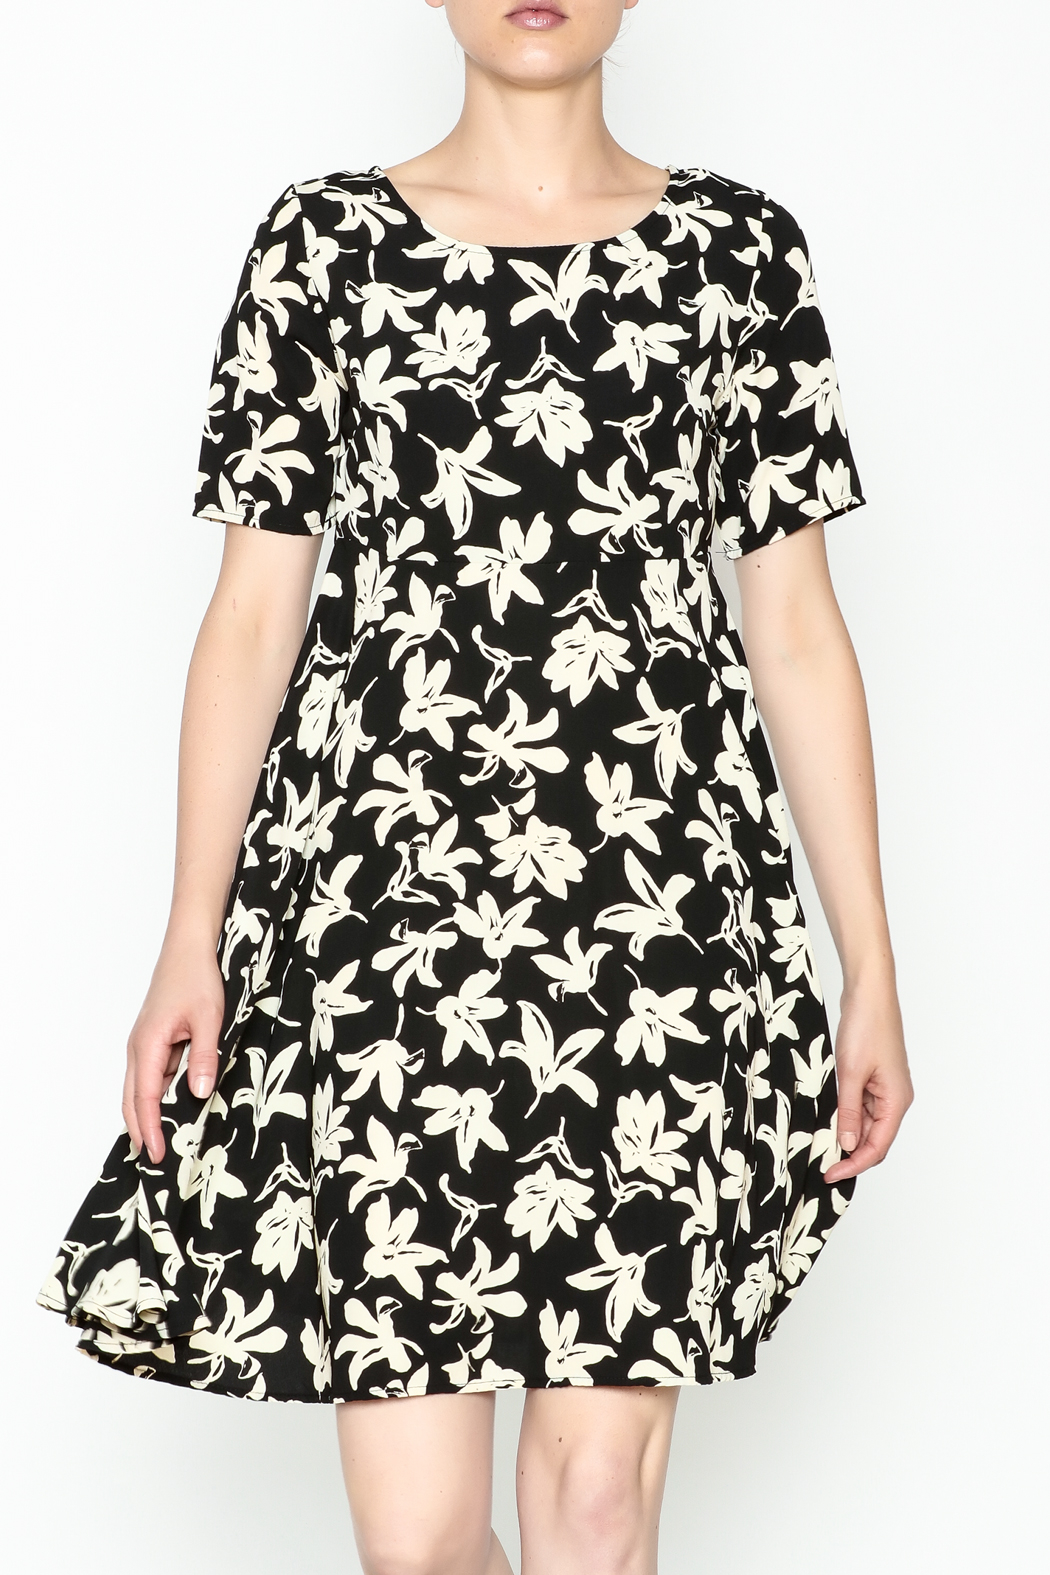 Everly Terri Floral Shift Dress - Main Image